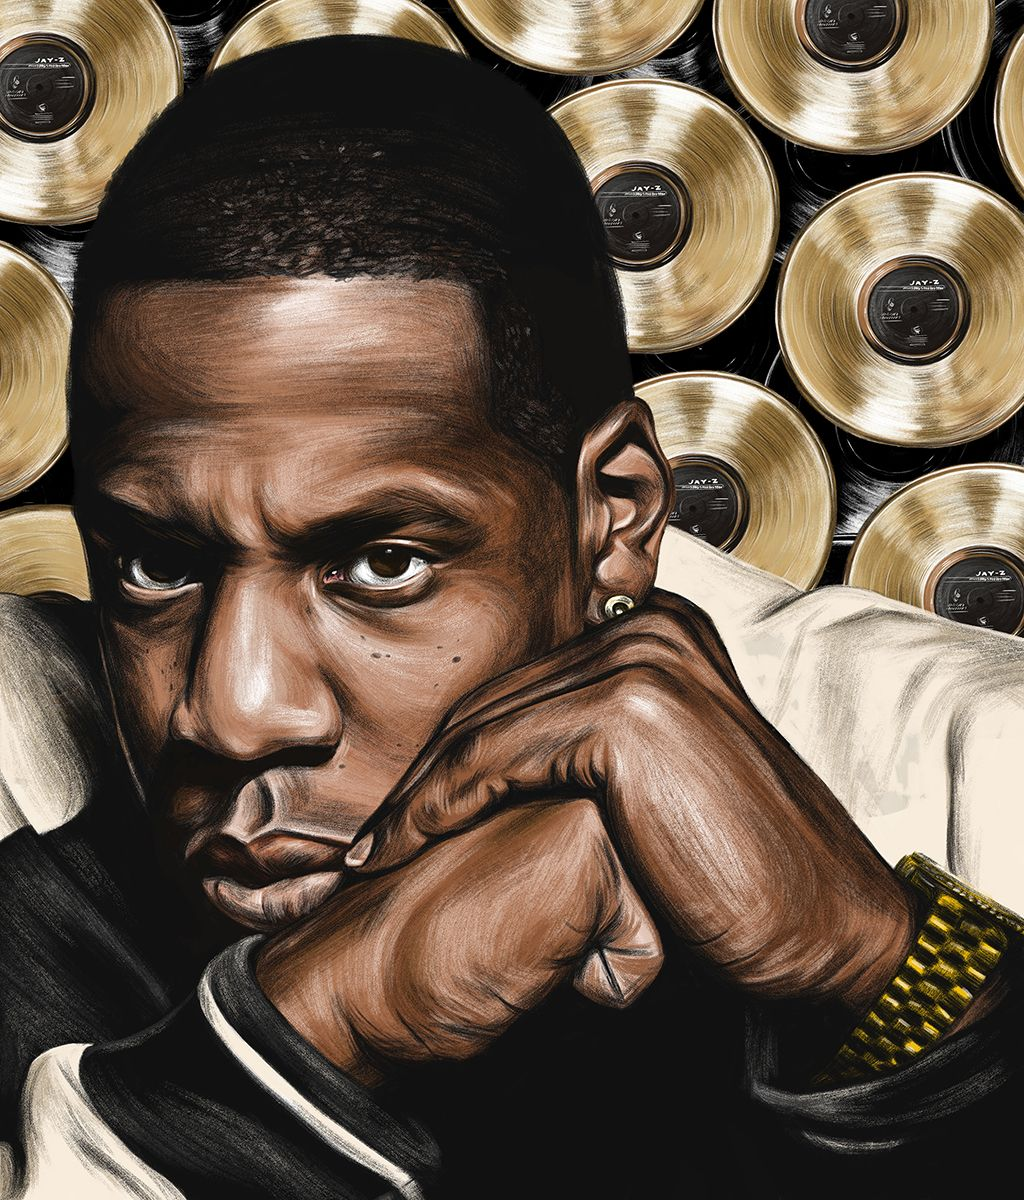 All 274 jay z songs ranked from worst to best malvernweather